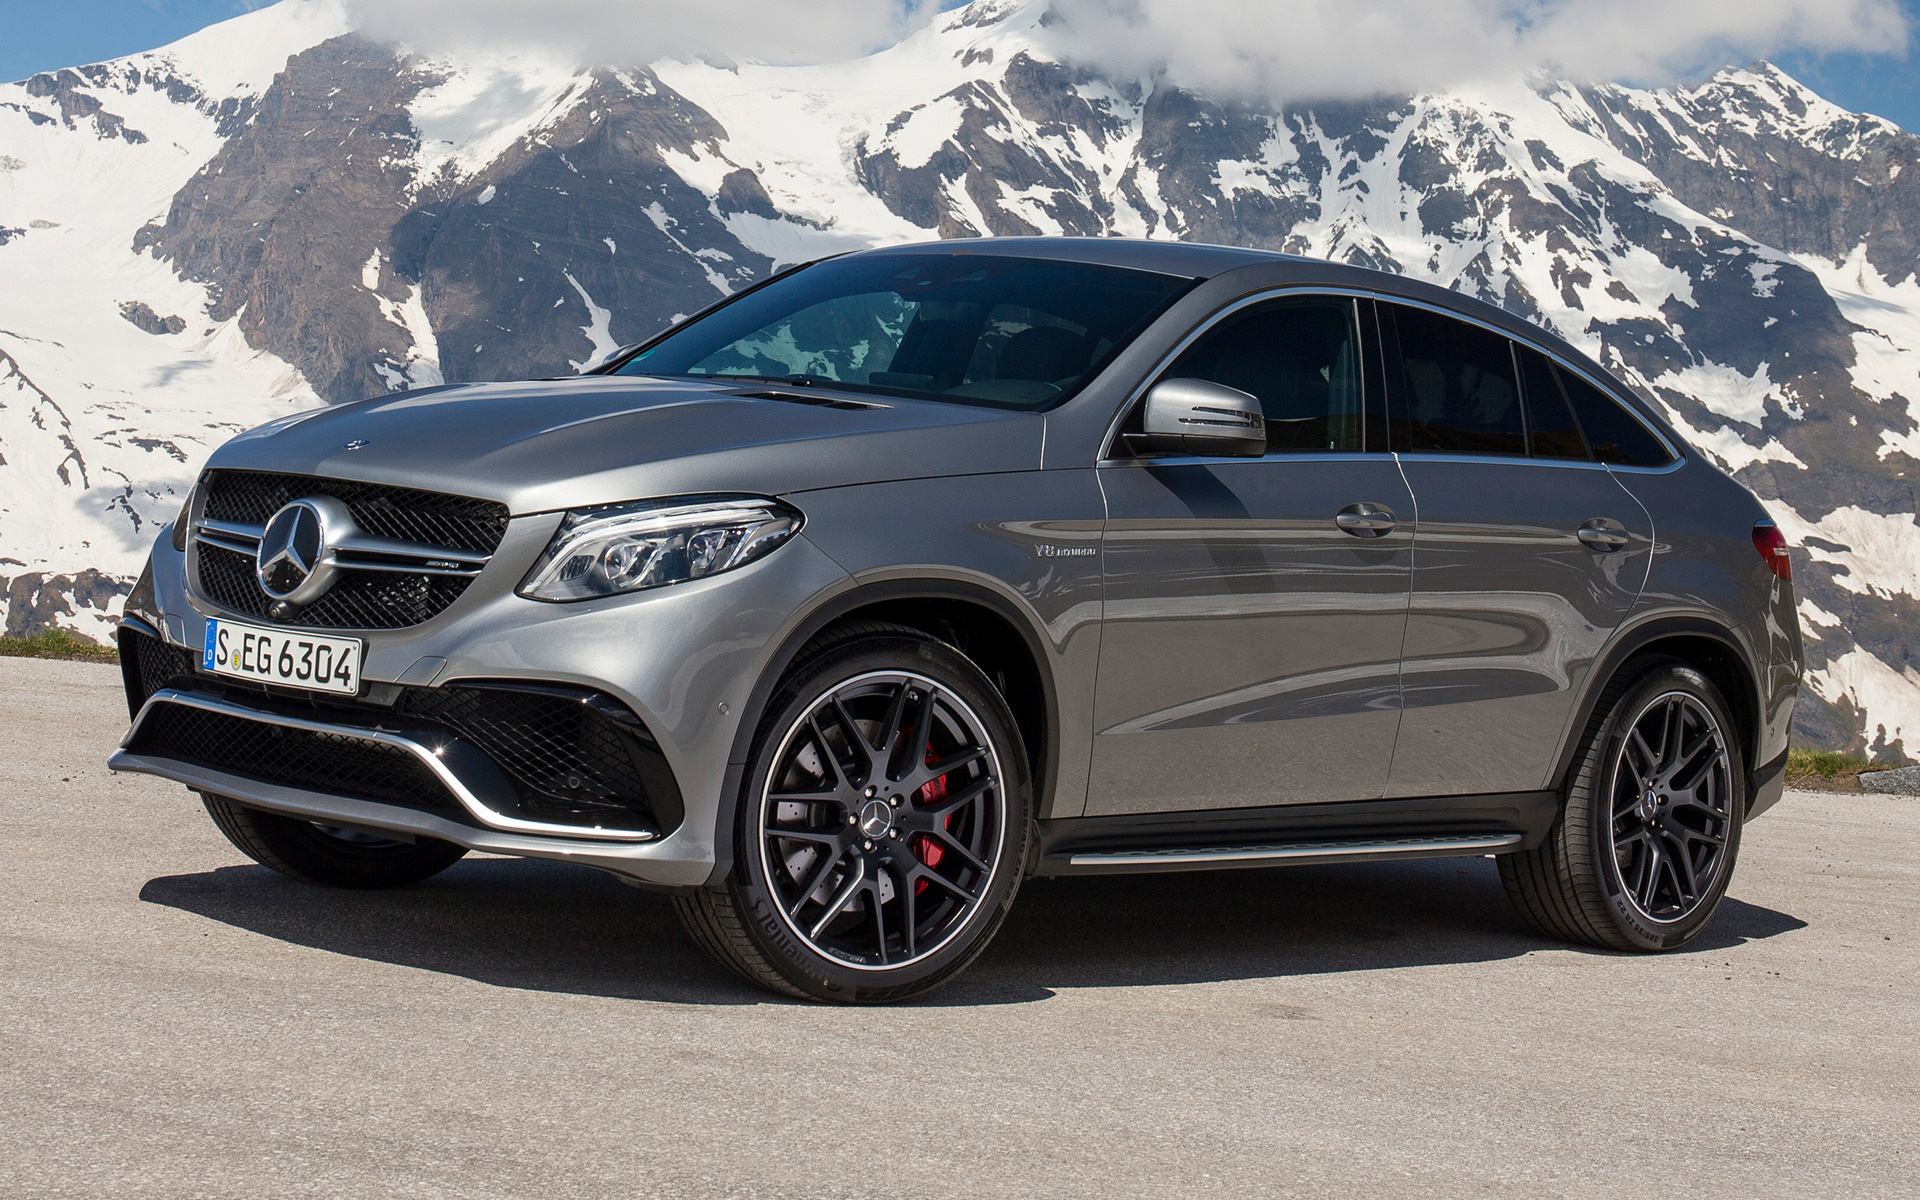 https://www.carpixel.net/w/339dfef3b5462884b05b8ea0c139a338/mercedes-amg-gle-63-s-coupe-car-wallpaper-29937.jpg